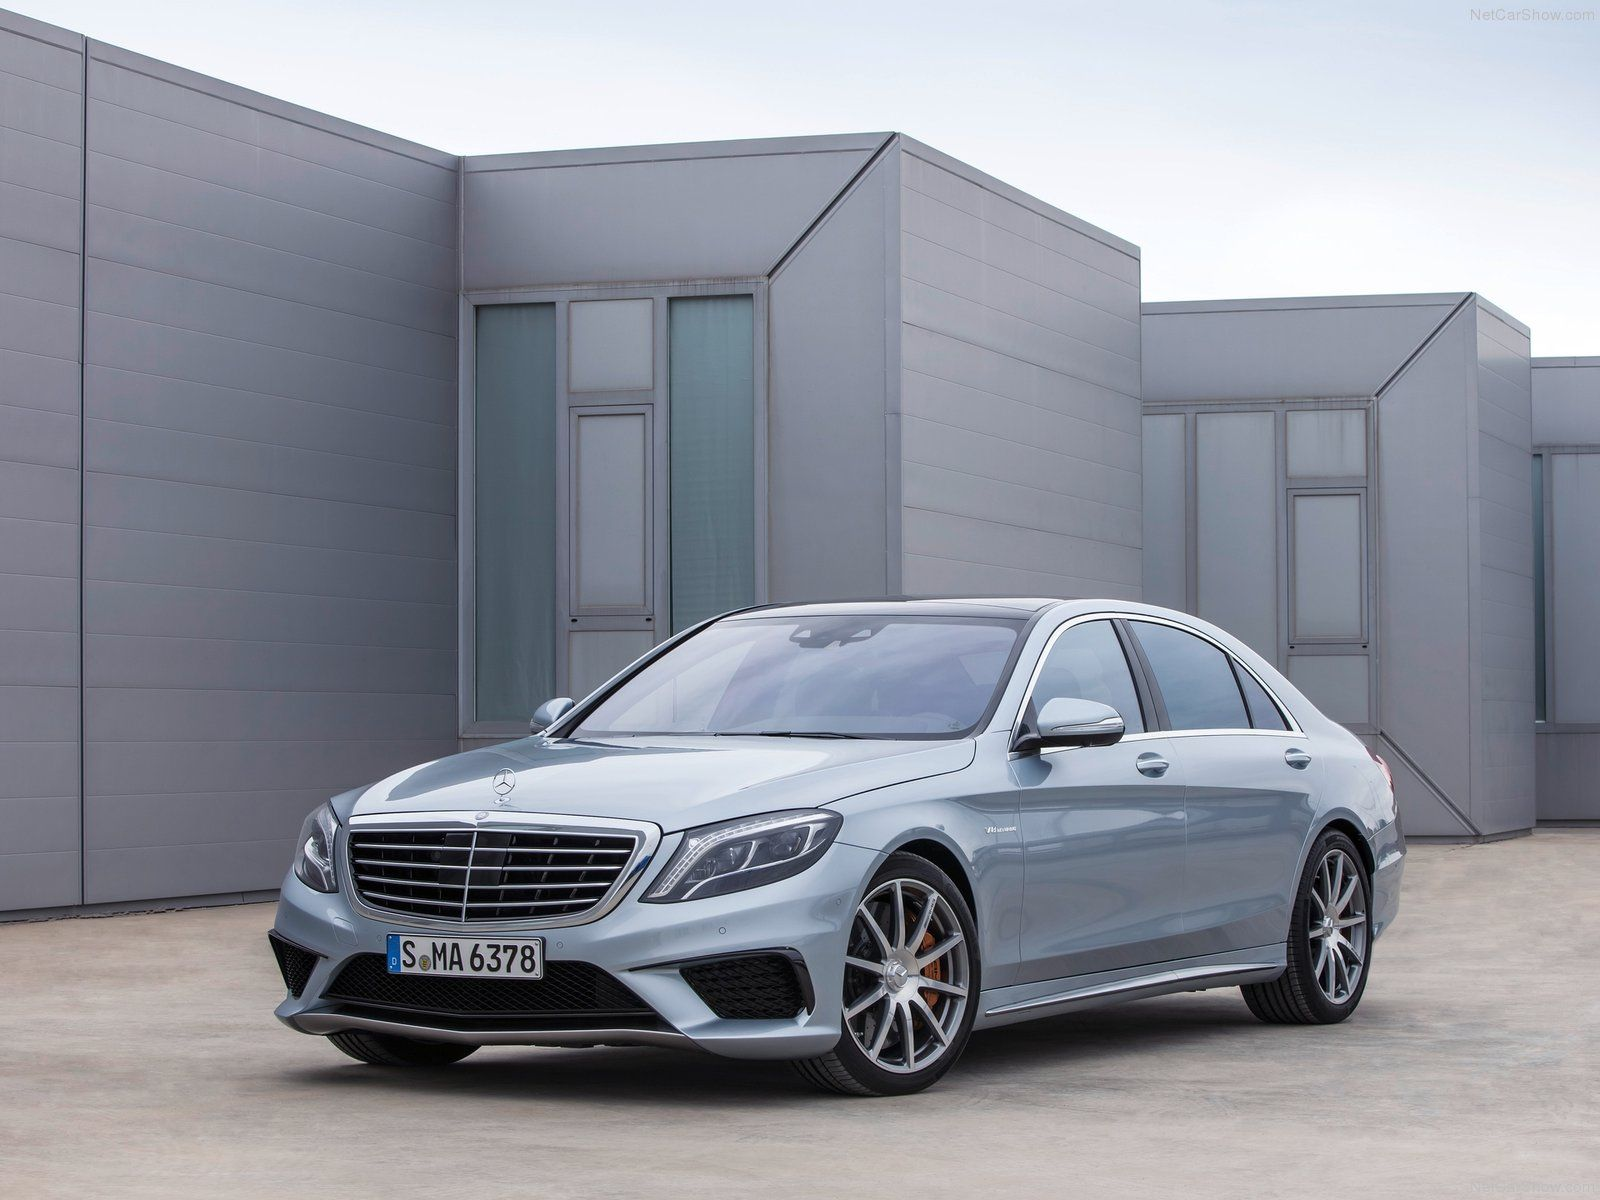 2019 Mercedes Amg Gt 63 S 4 Door Coupe 4matic Specifications